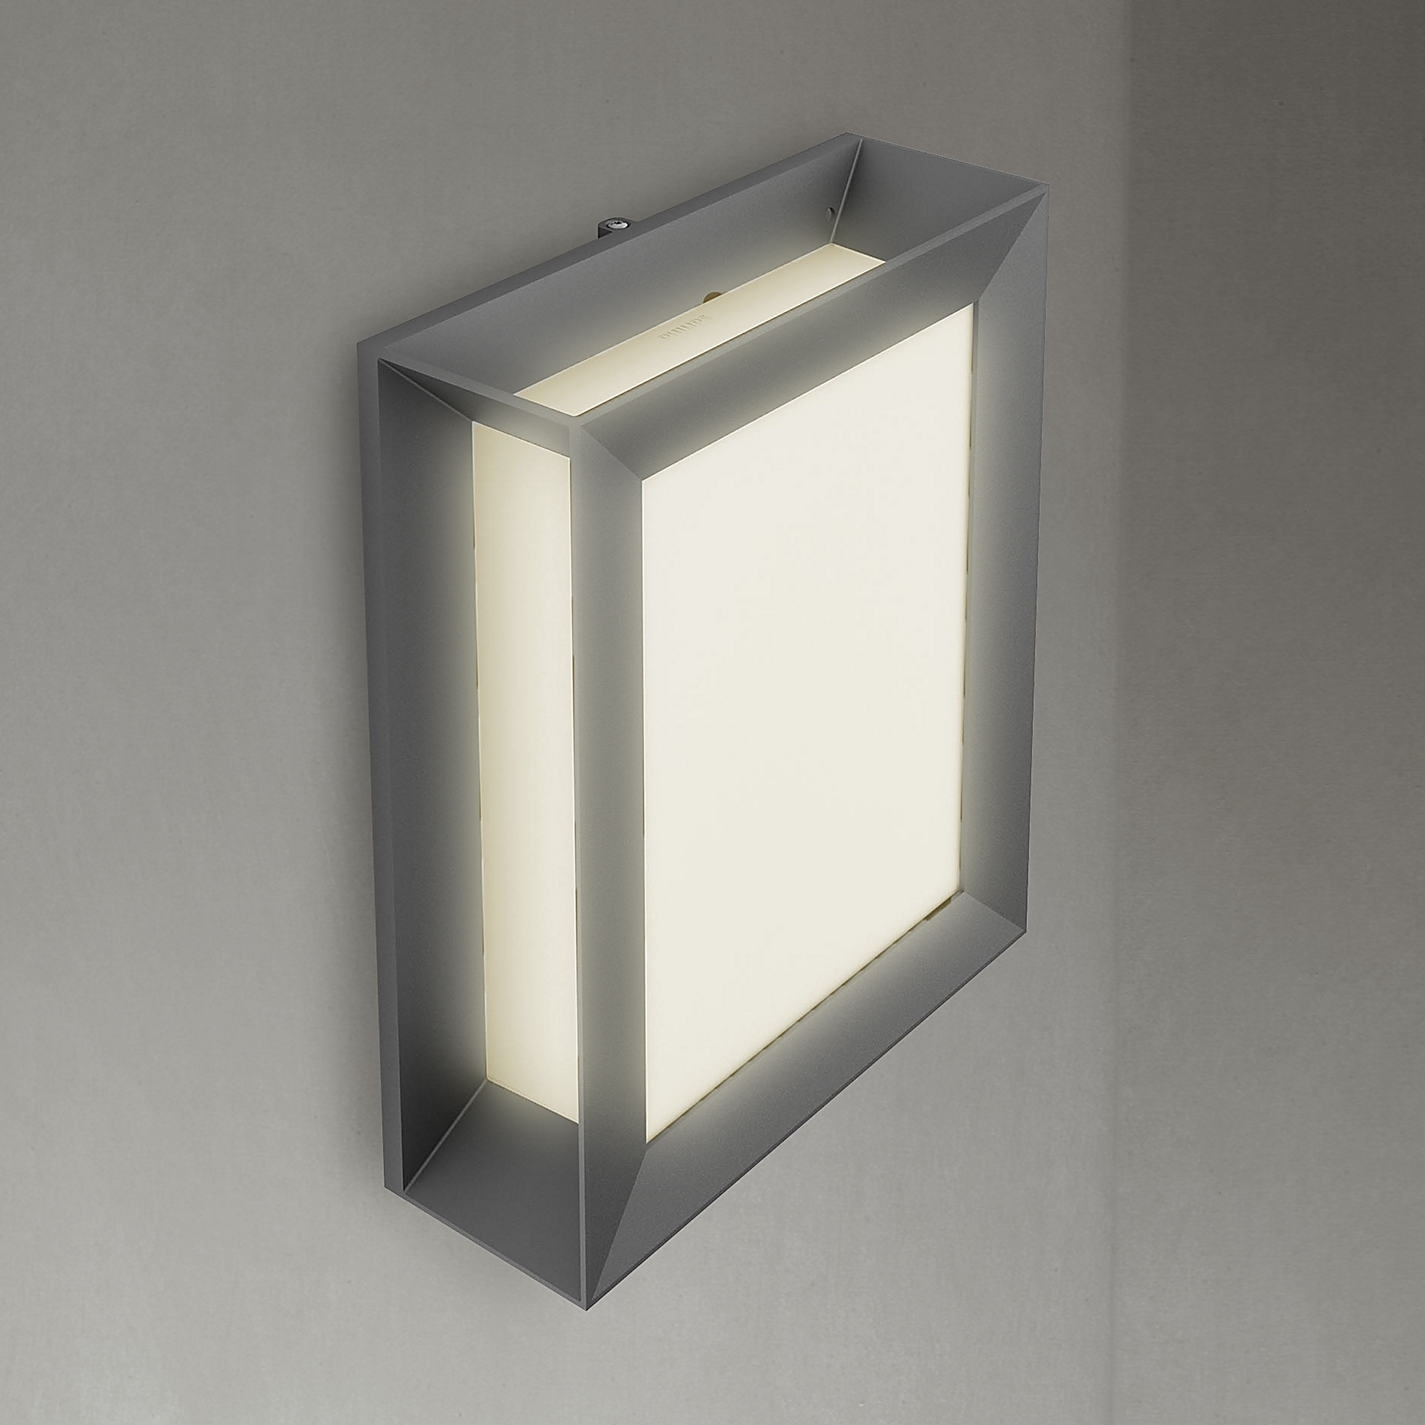 Buy Philips Karp Led Outdoor Wall Light Anthracite John Lewis For Ip65 Outdoor Wall Lights (View 7 of 15)